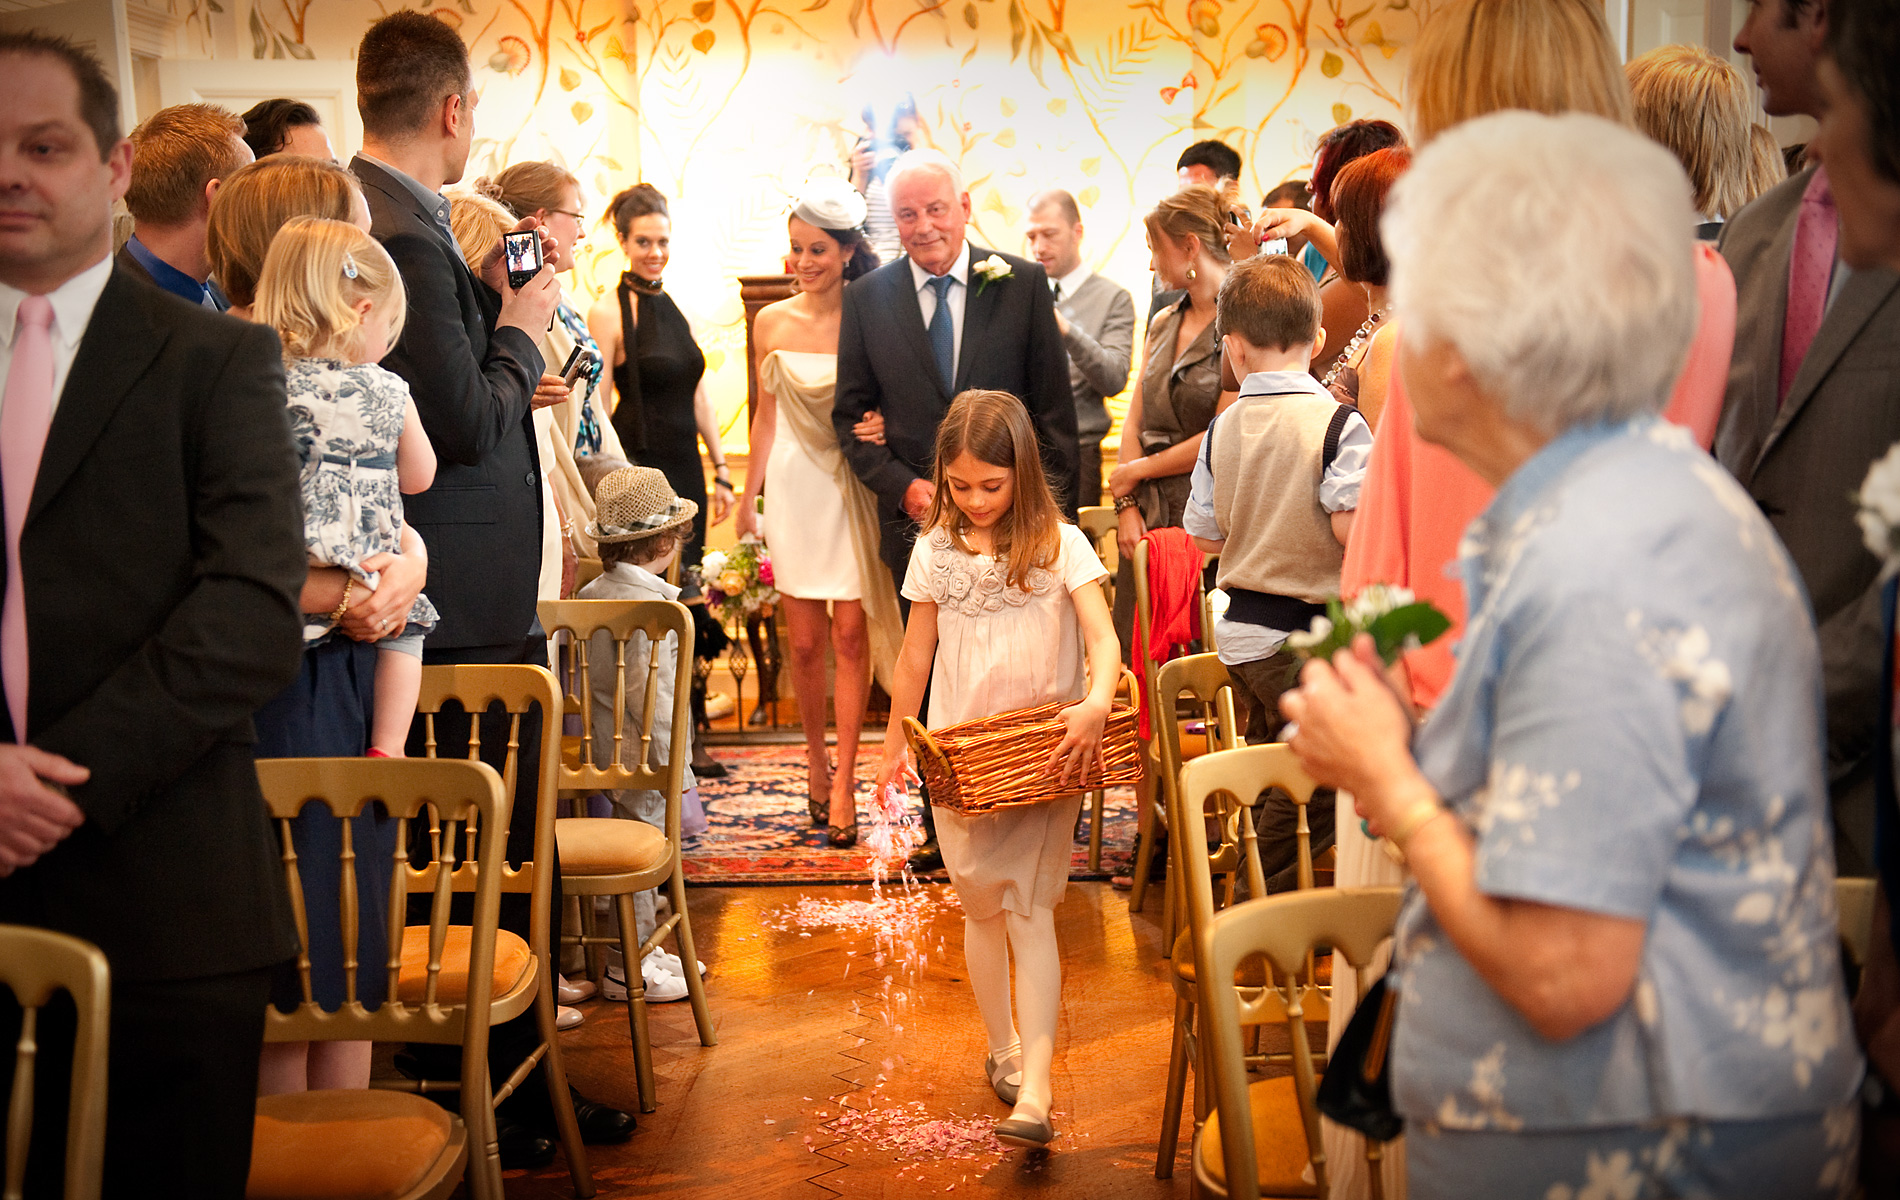 South-wales-photographer-flower-girl scattering-petals-wedding-ceremony-gliffaes-hotel-crickhowell.